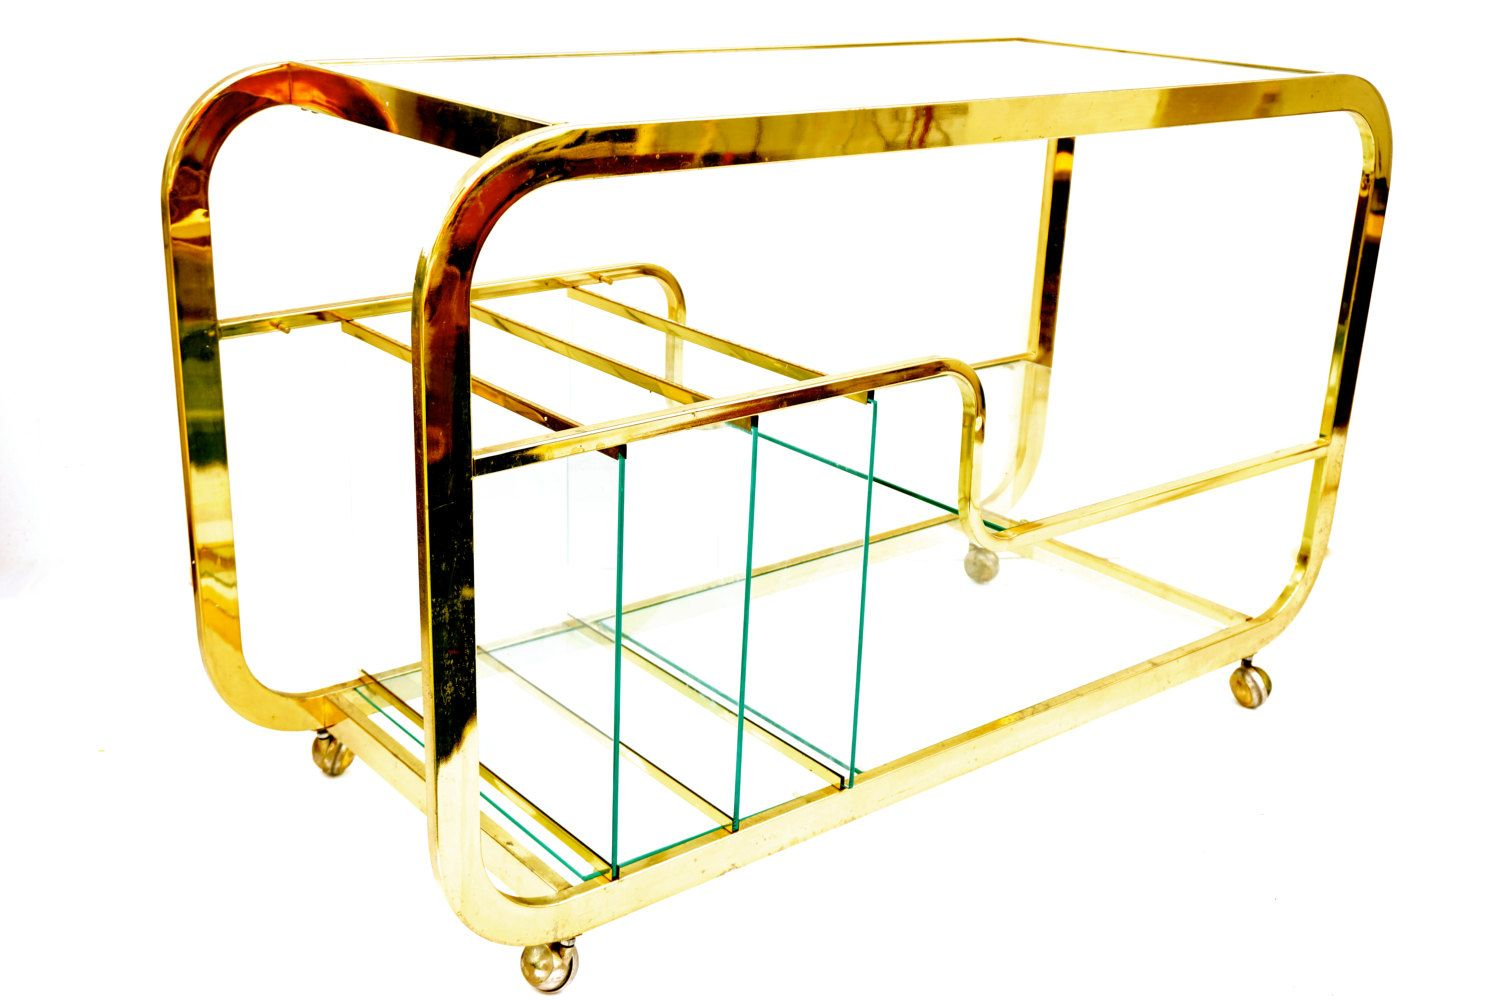 Milo Baughman for DIA Brass & Glass Bar Cart Etagere Console Table || Modern Hollywood Regency Versatile Furniture by ELECTRICmarigold on Etsy